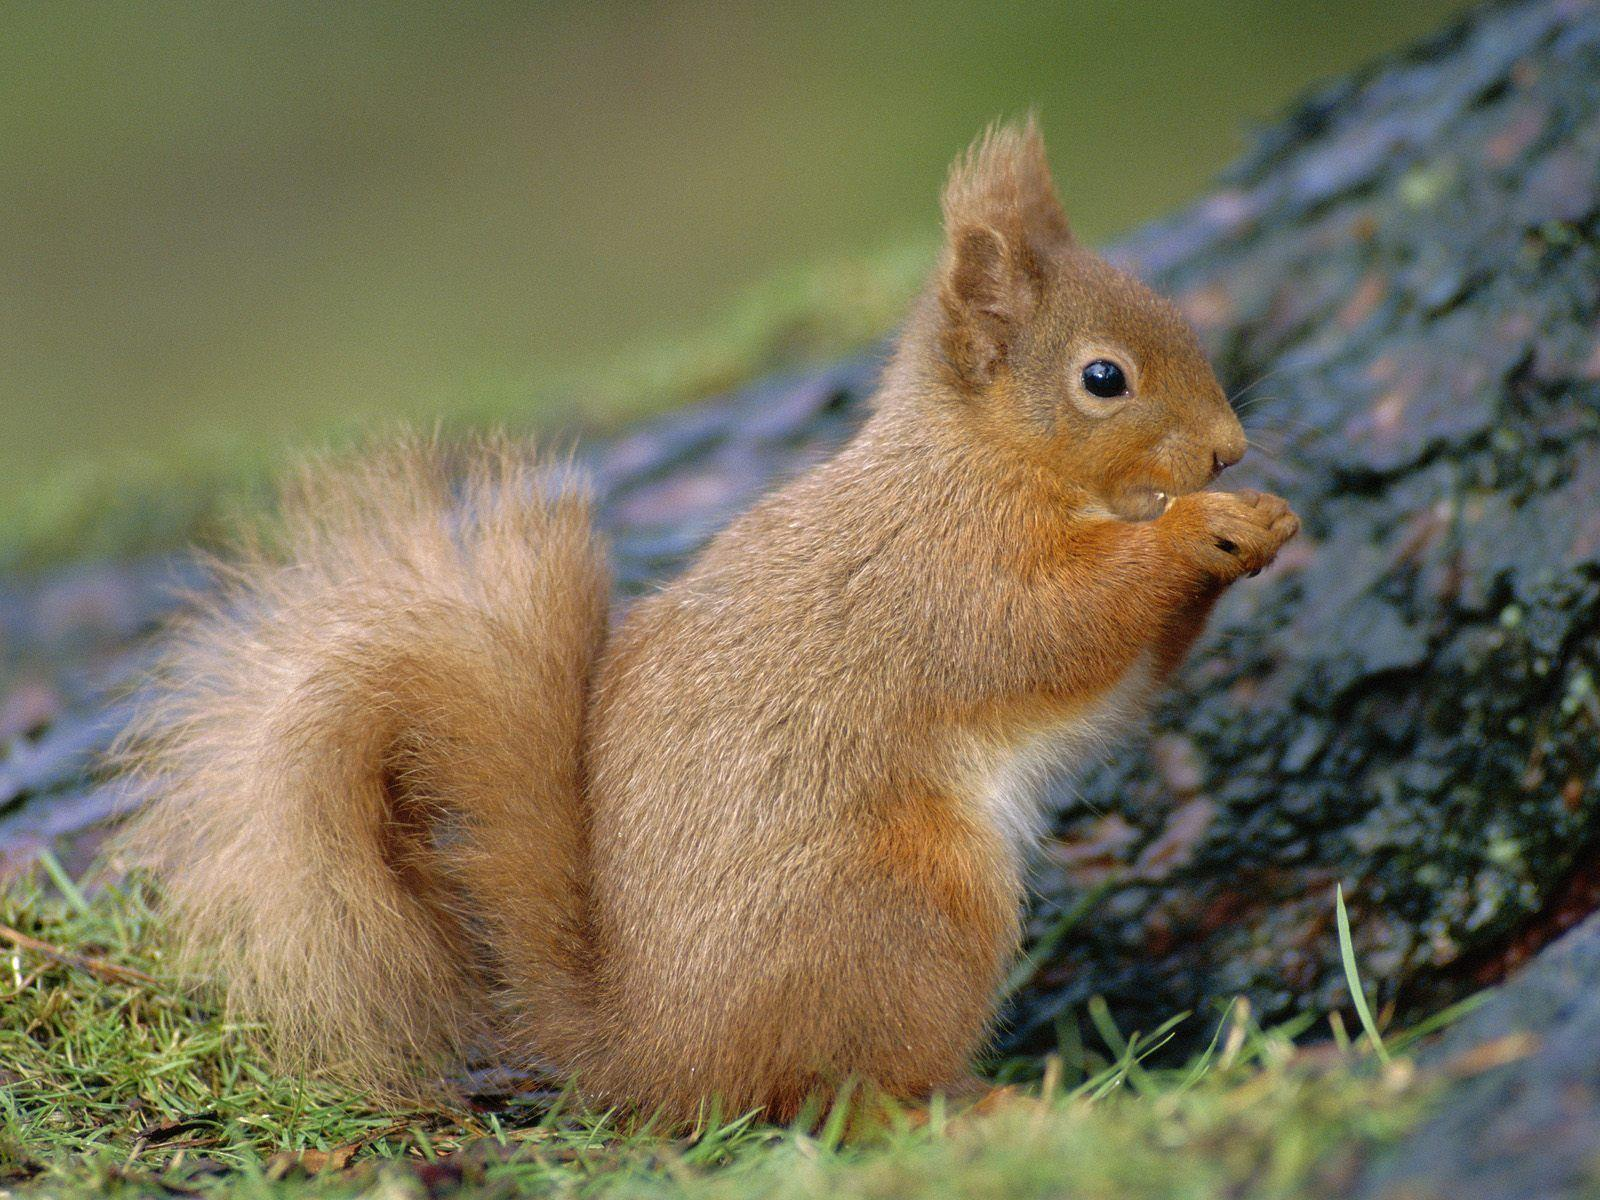 Squirrel Wallpaper 16241 1920x1200 px ~ FreeWallSource.